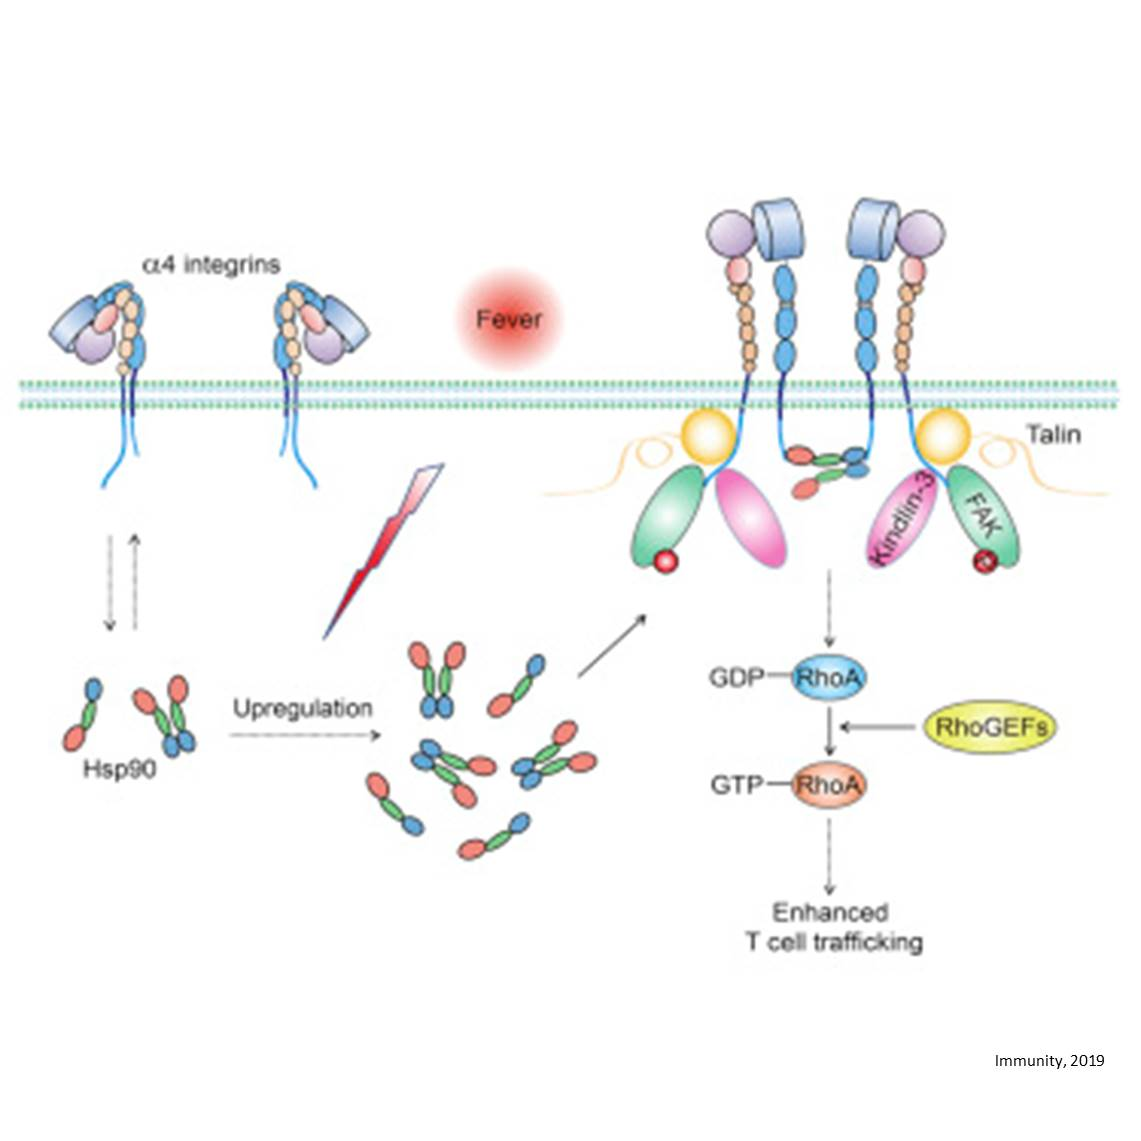 Fever activates Hsp90-integrin pathway to traffic T-lymphocytes